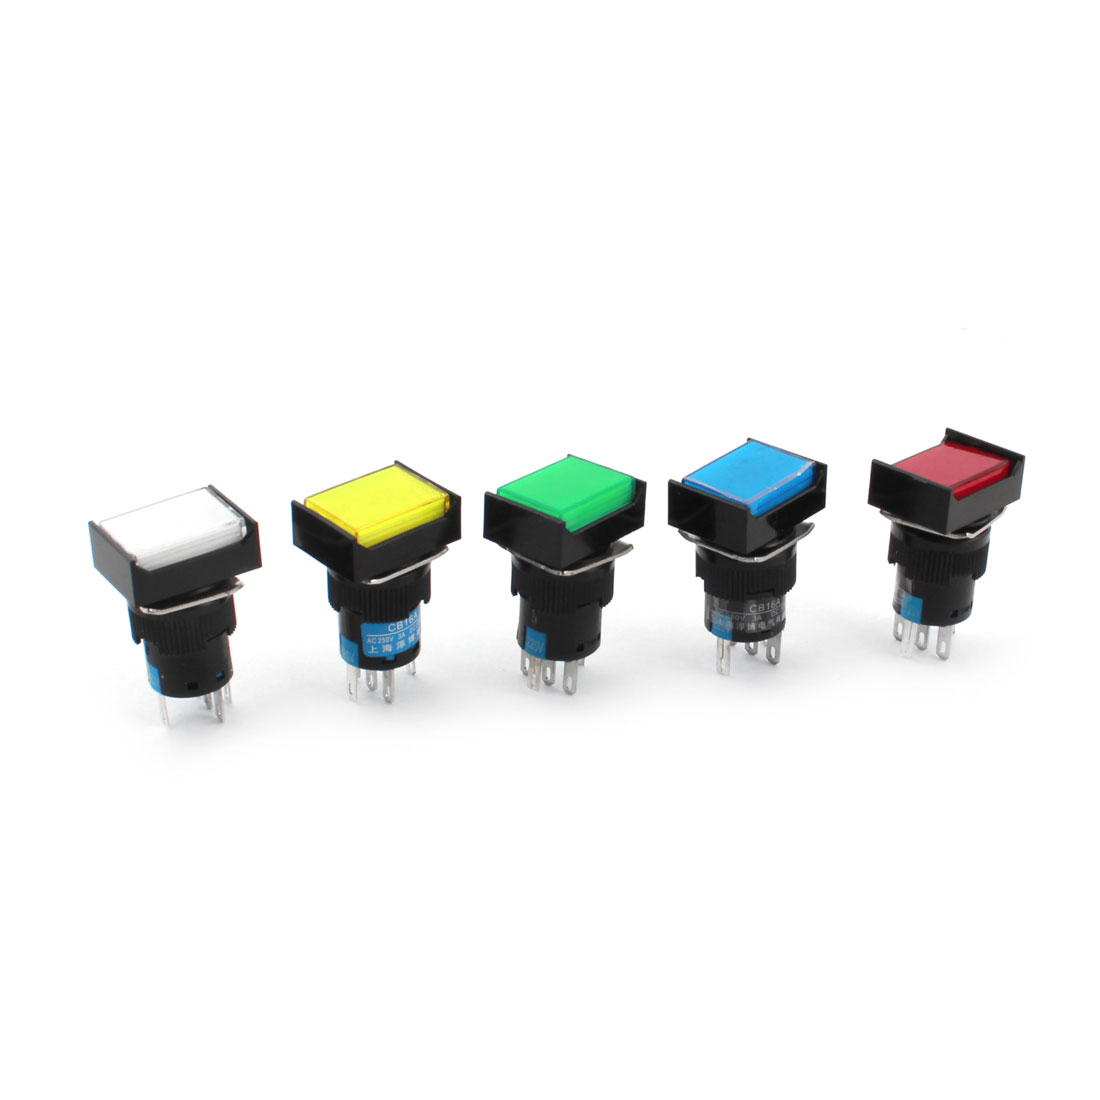 5Pcs AC 220V Five-Colored Indicator Light Lamp 16mm Threaded Panel Mount SPDT 1NO 1NC 5 Pins Locking Rectangle Head Pushbutton Switch